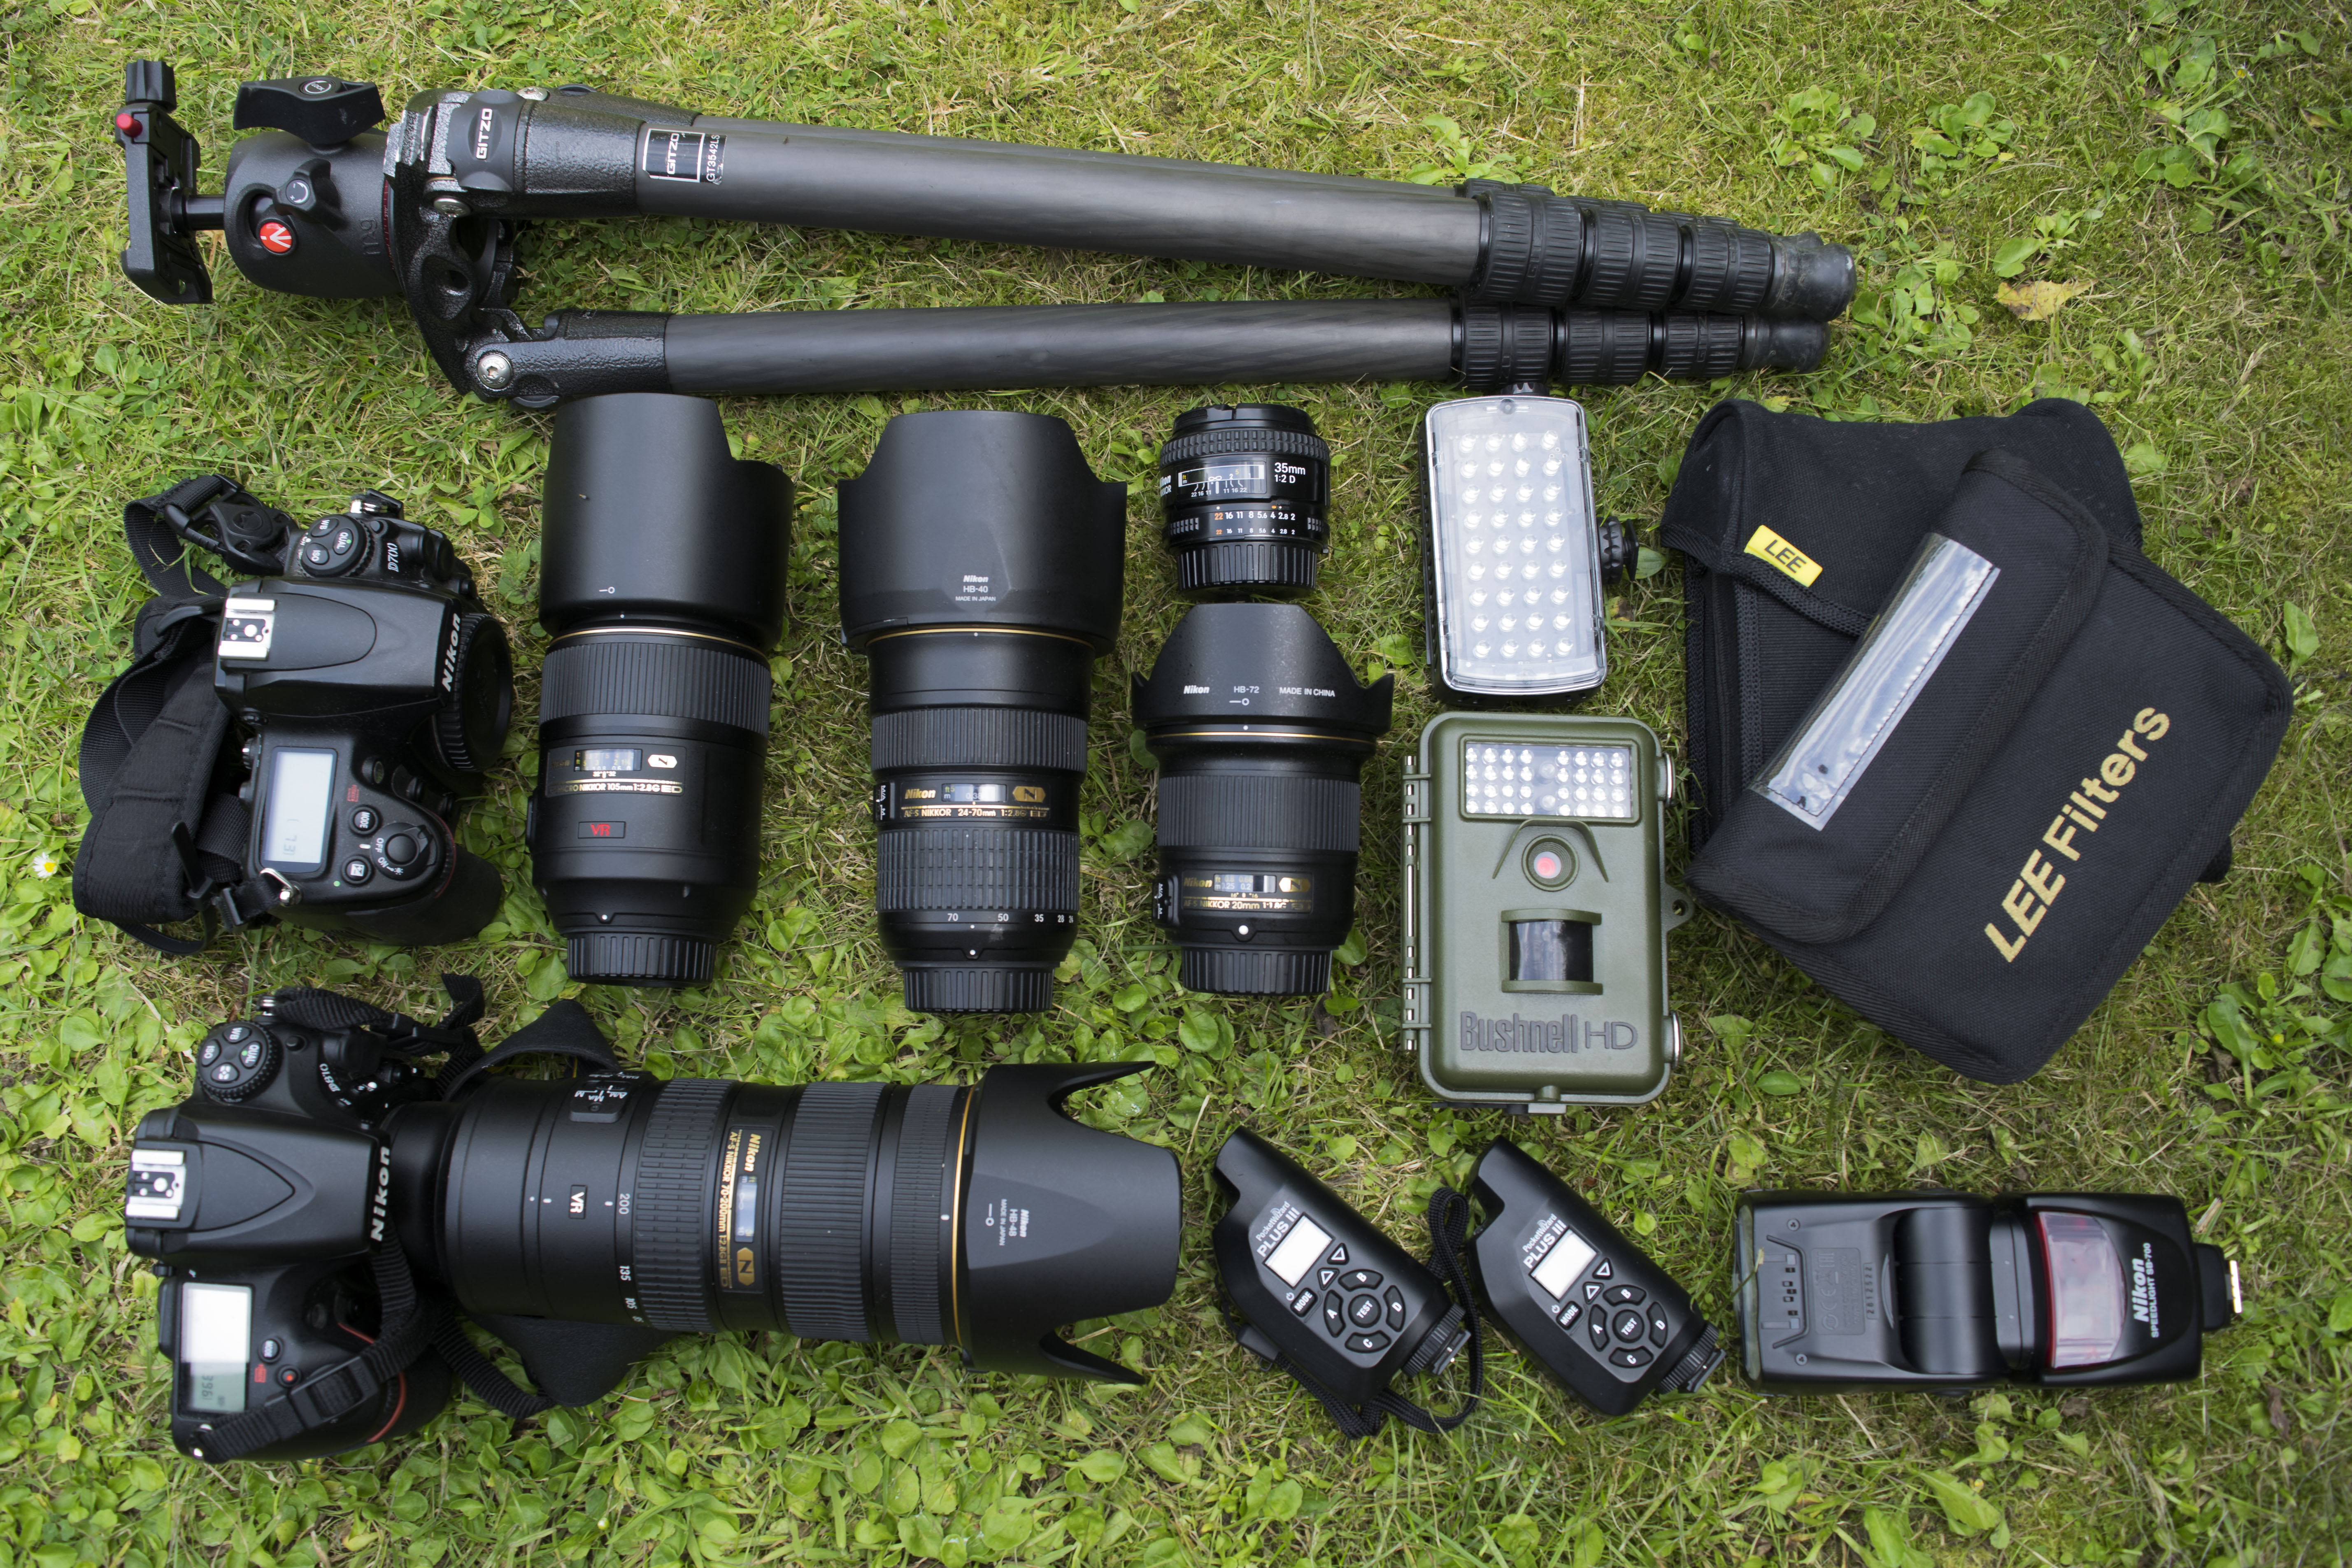 Camera gear and kit for wildlife photography